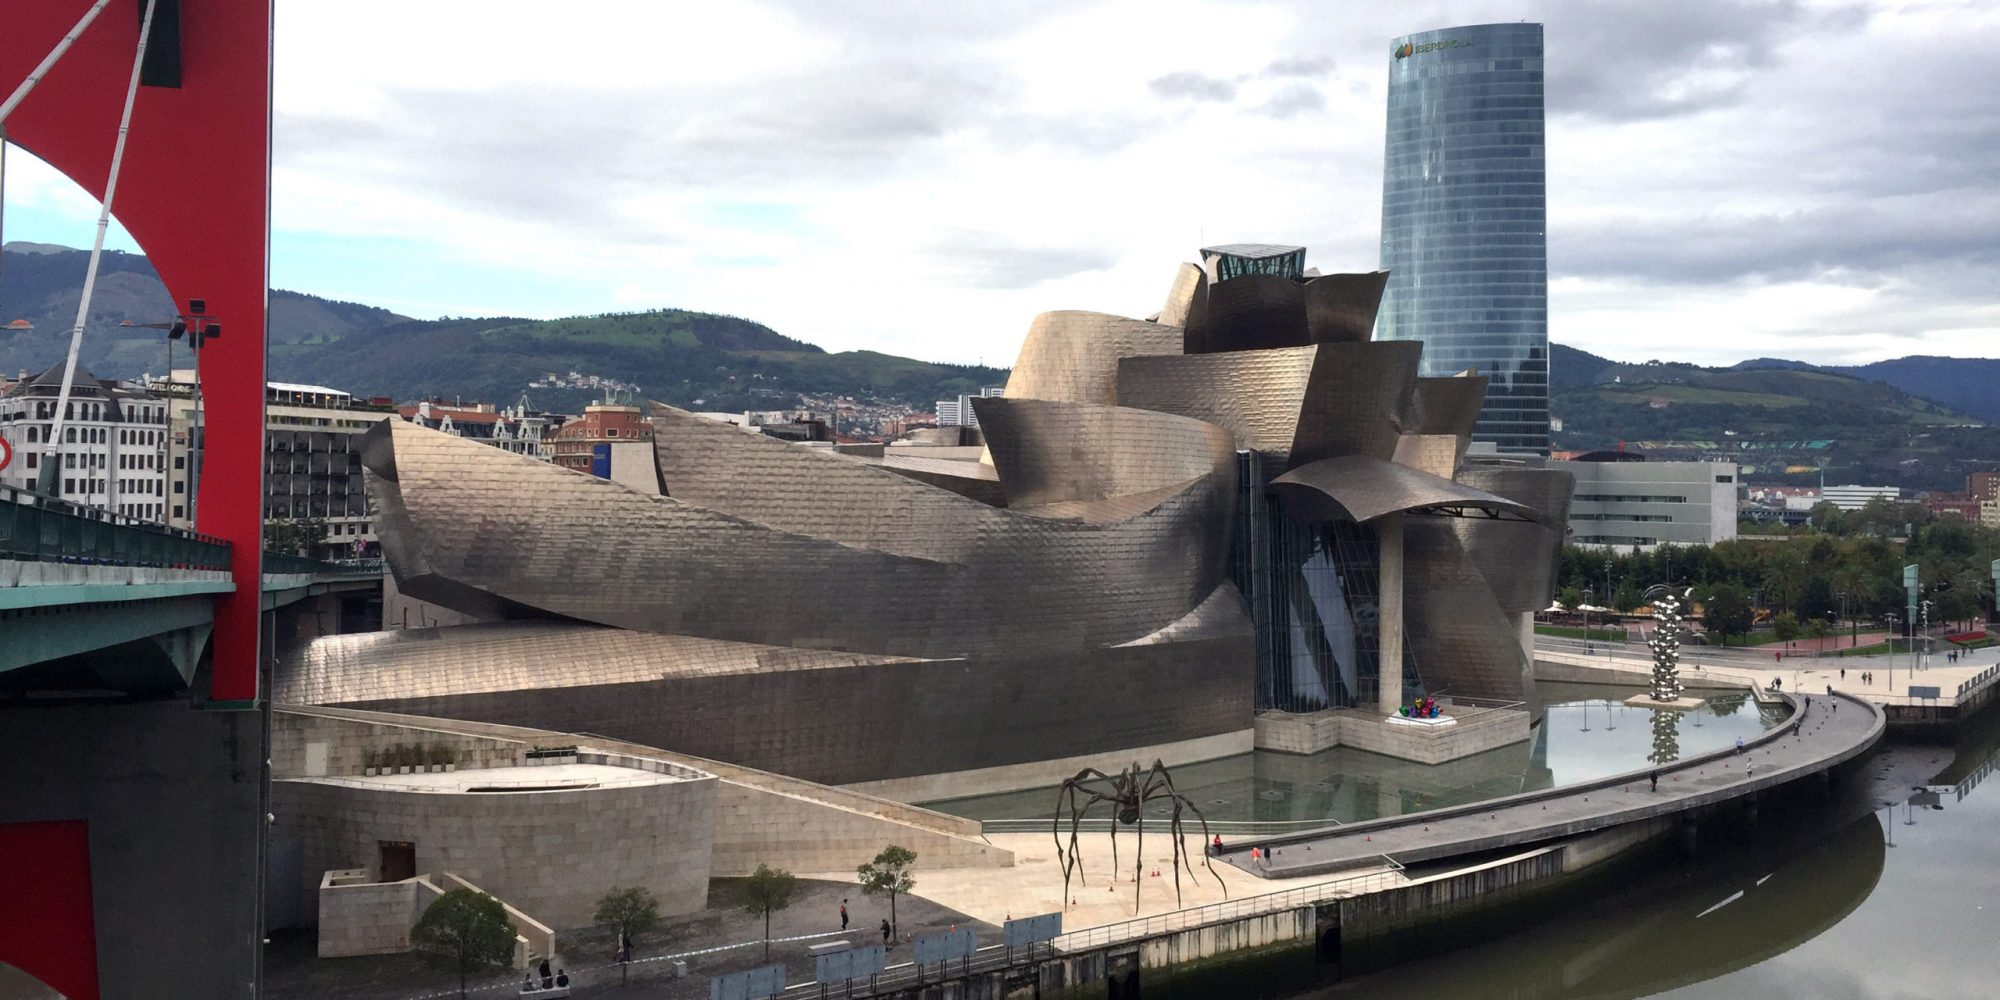 Guggenheim Museum From La Salve Bridge, Bilbao